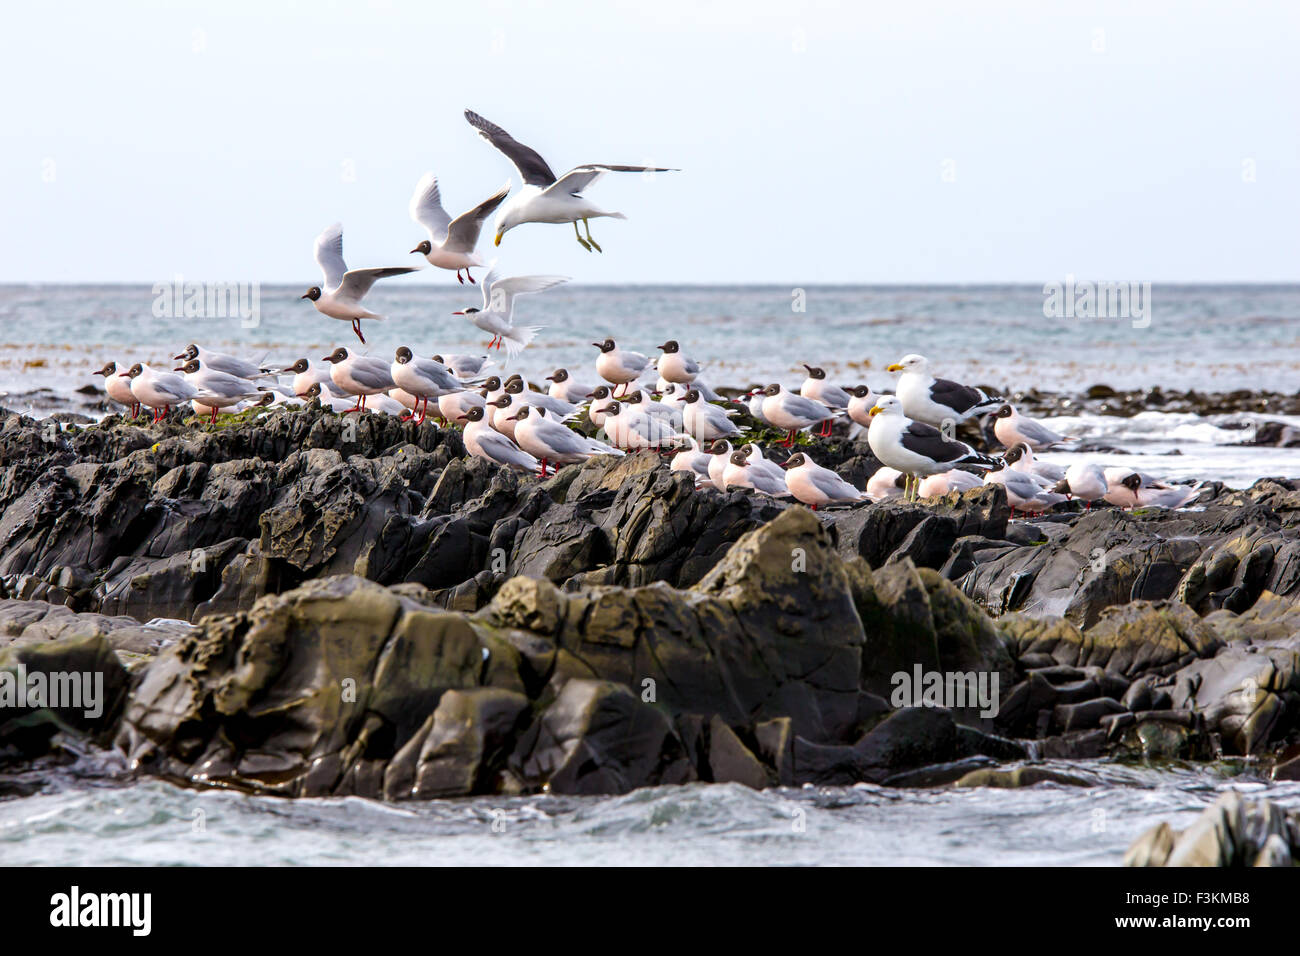 Birds of the Falkland Islands. Brown Hooded Gulls and kelp Gulls on the rocks at Bertha's beach, East Falkland. - Stock Image